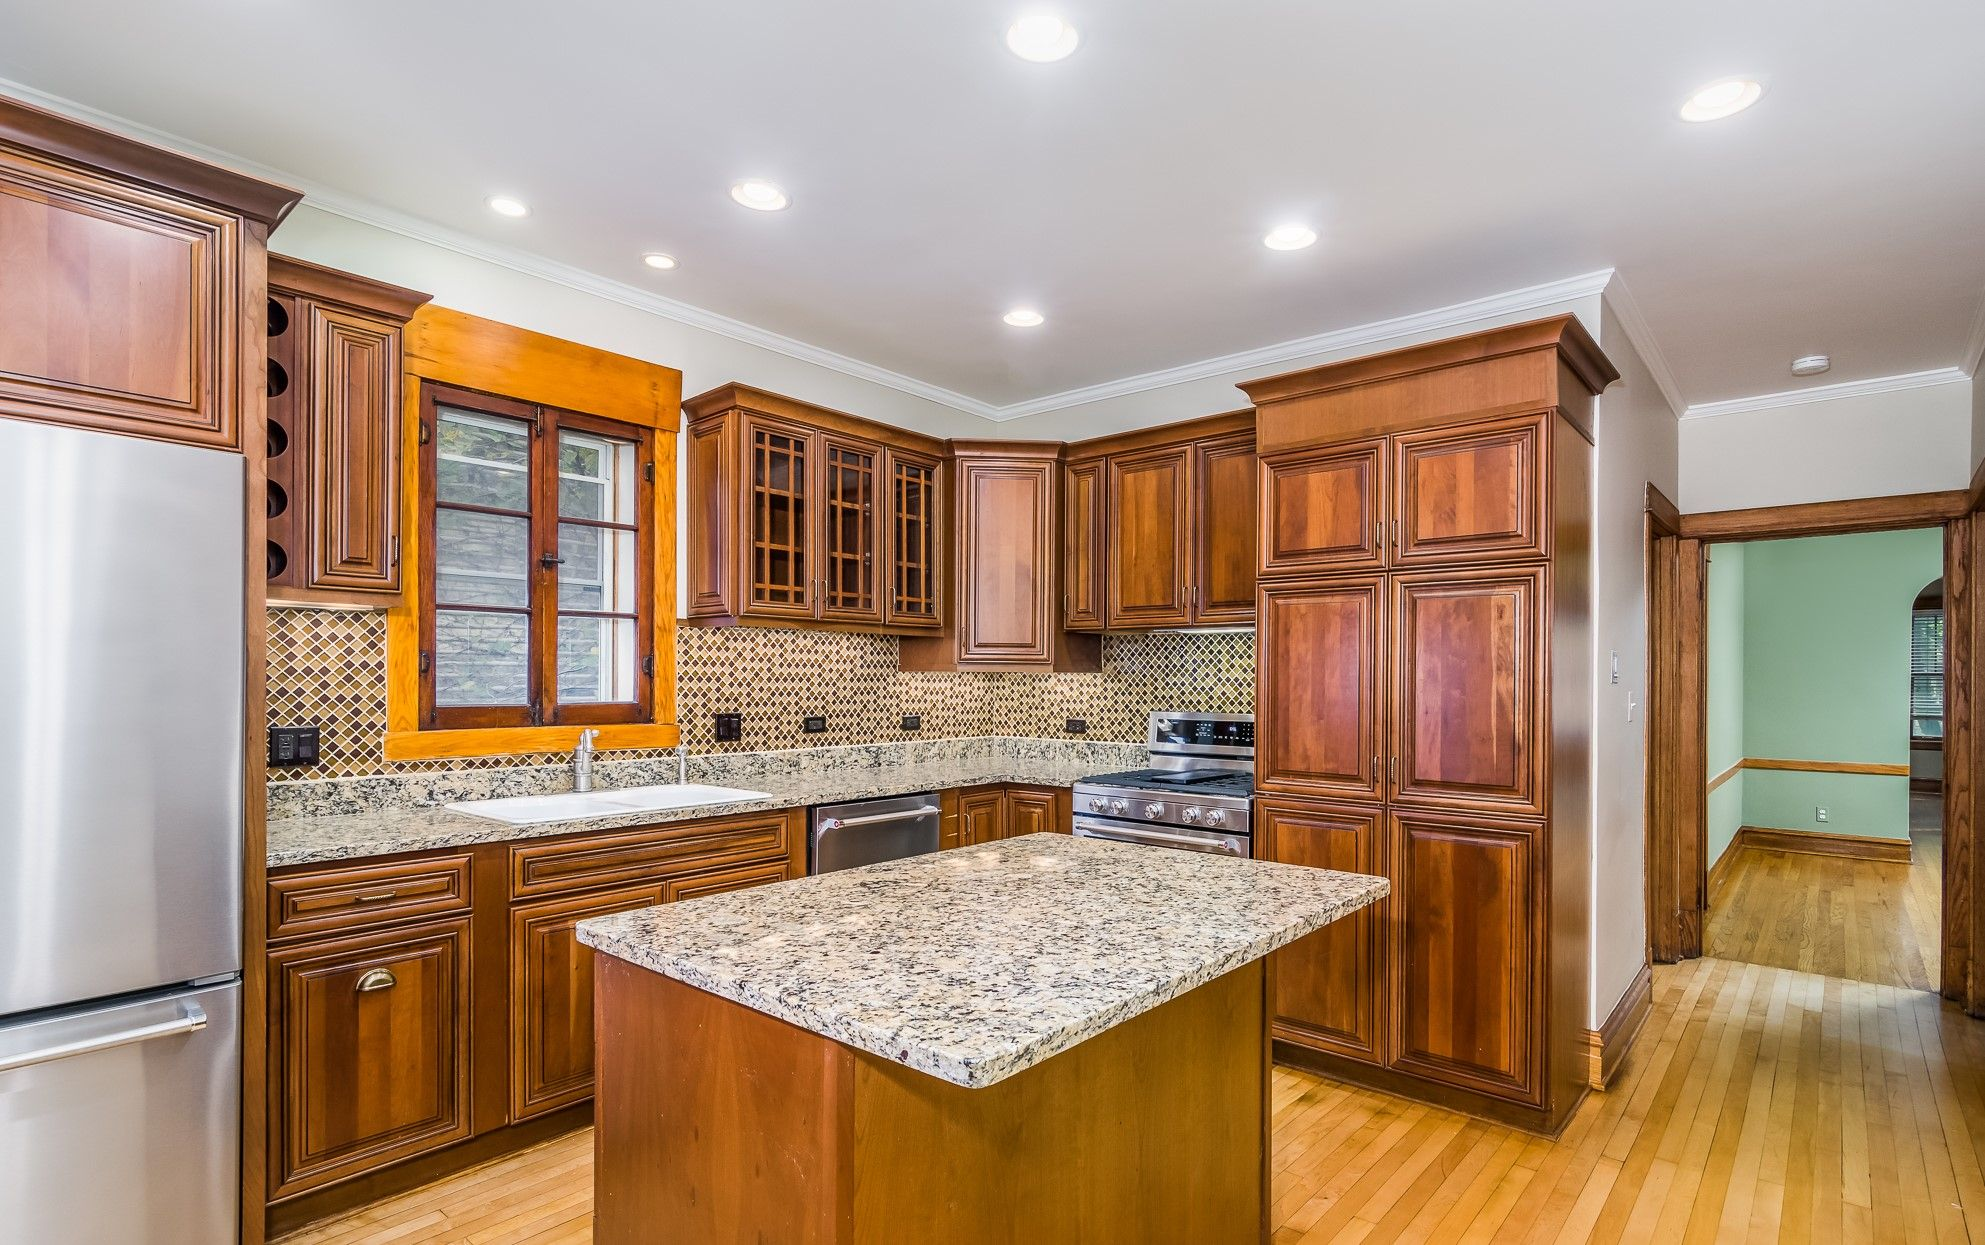 Vintage Style Kitchen With Cherry Cabinets Hardwood Floors Brown